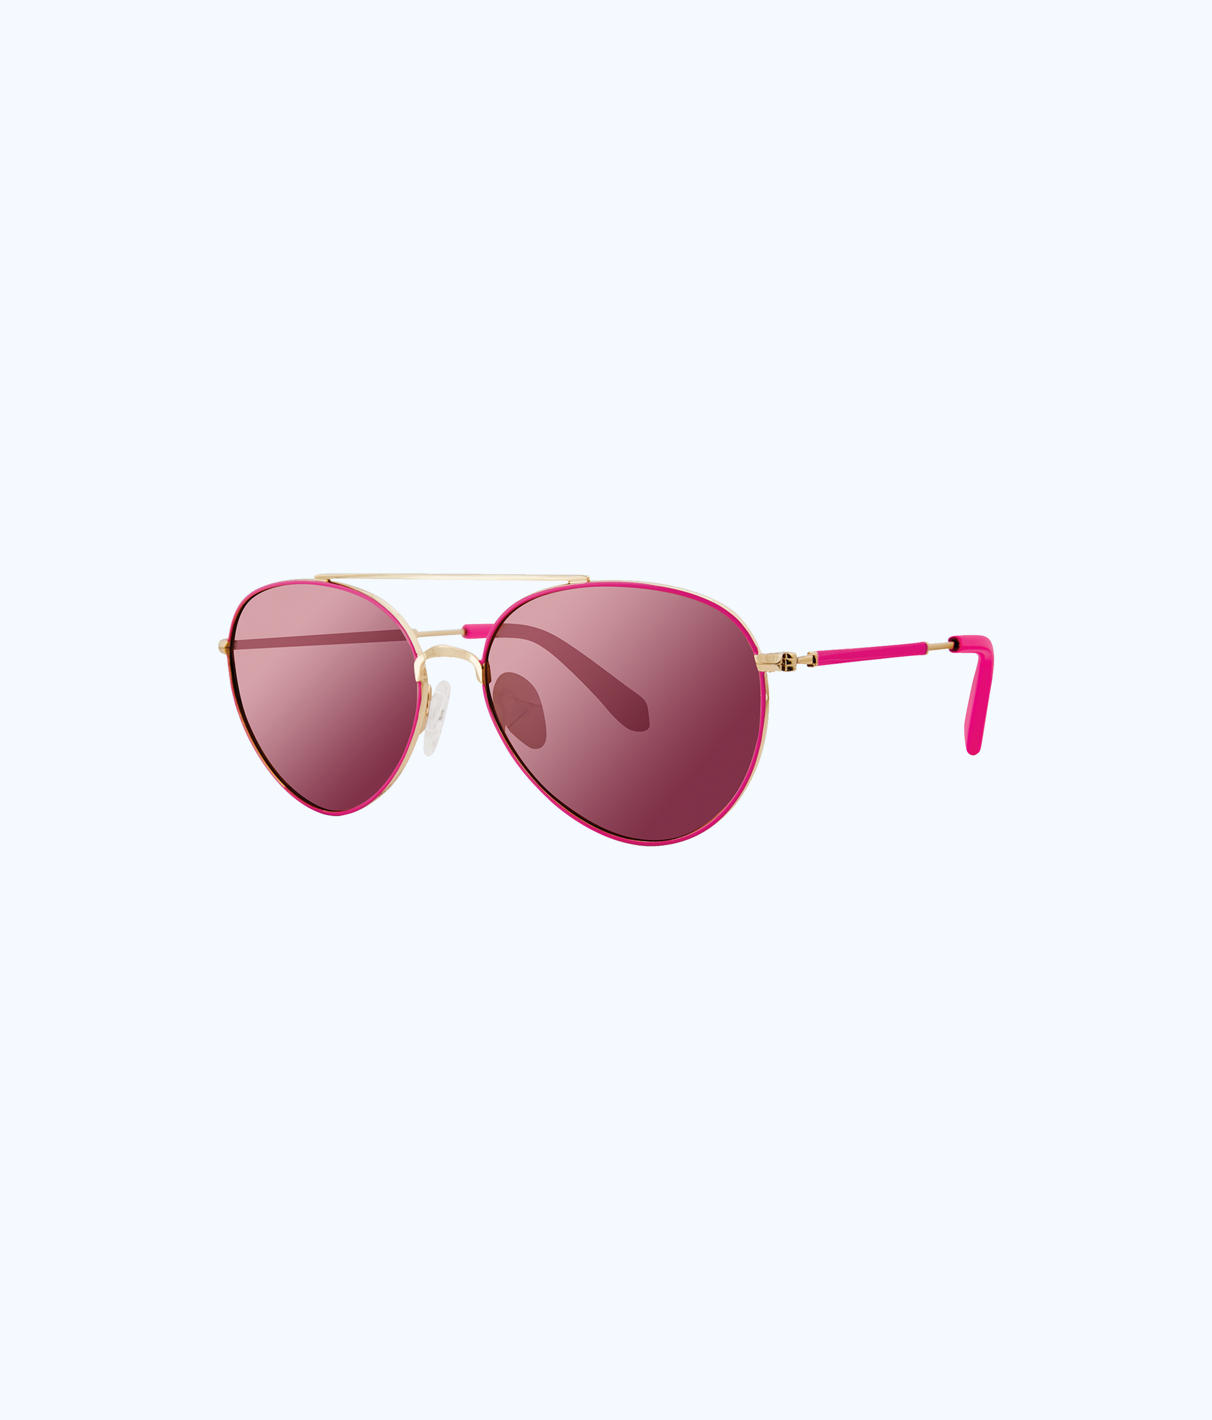 Lilly Pulitzer Lilly Pulitzer Isabelle Sunglasses